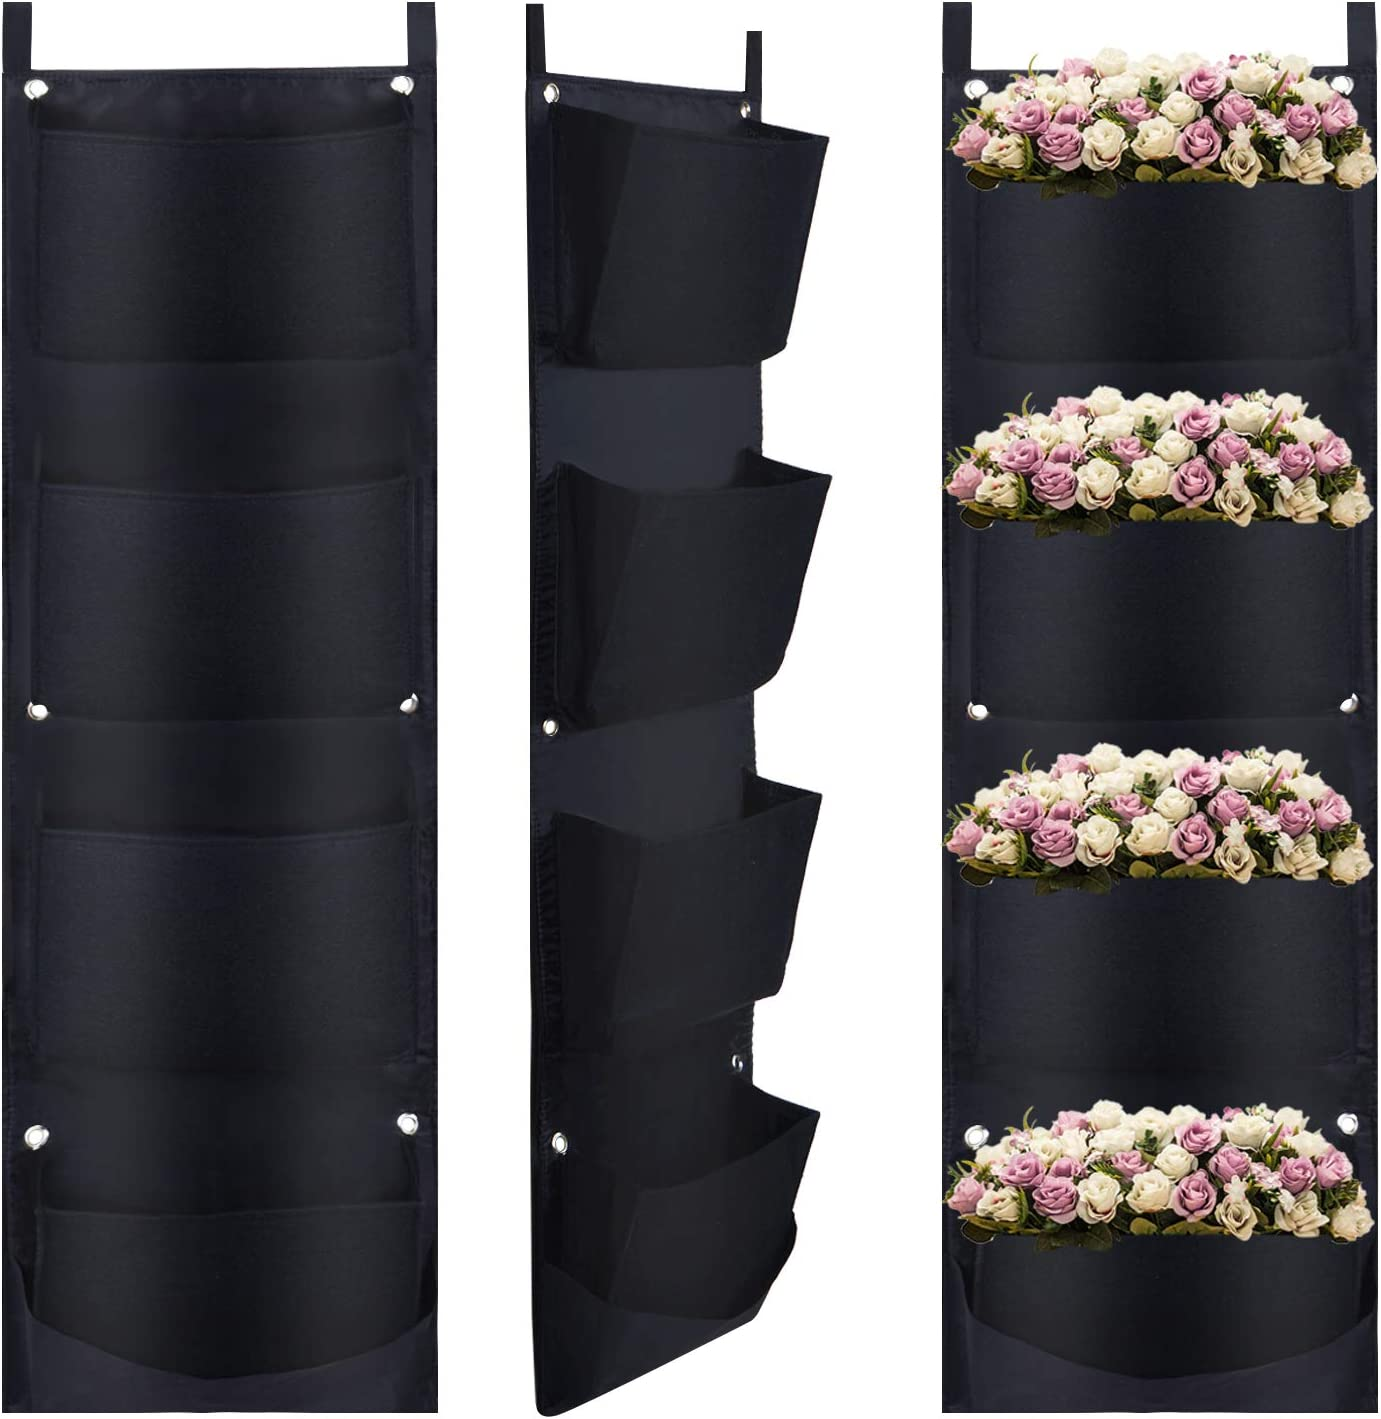 Martine Mall 2 Packs Vertical Hanging Garden Planter with 4 Pockets New Layout Waterproof Hanging Garden Wall Planter Solution for Herbs or Flowers Outdoor and Patio Areas